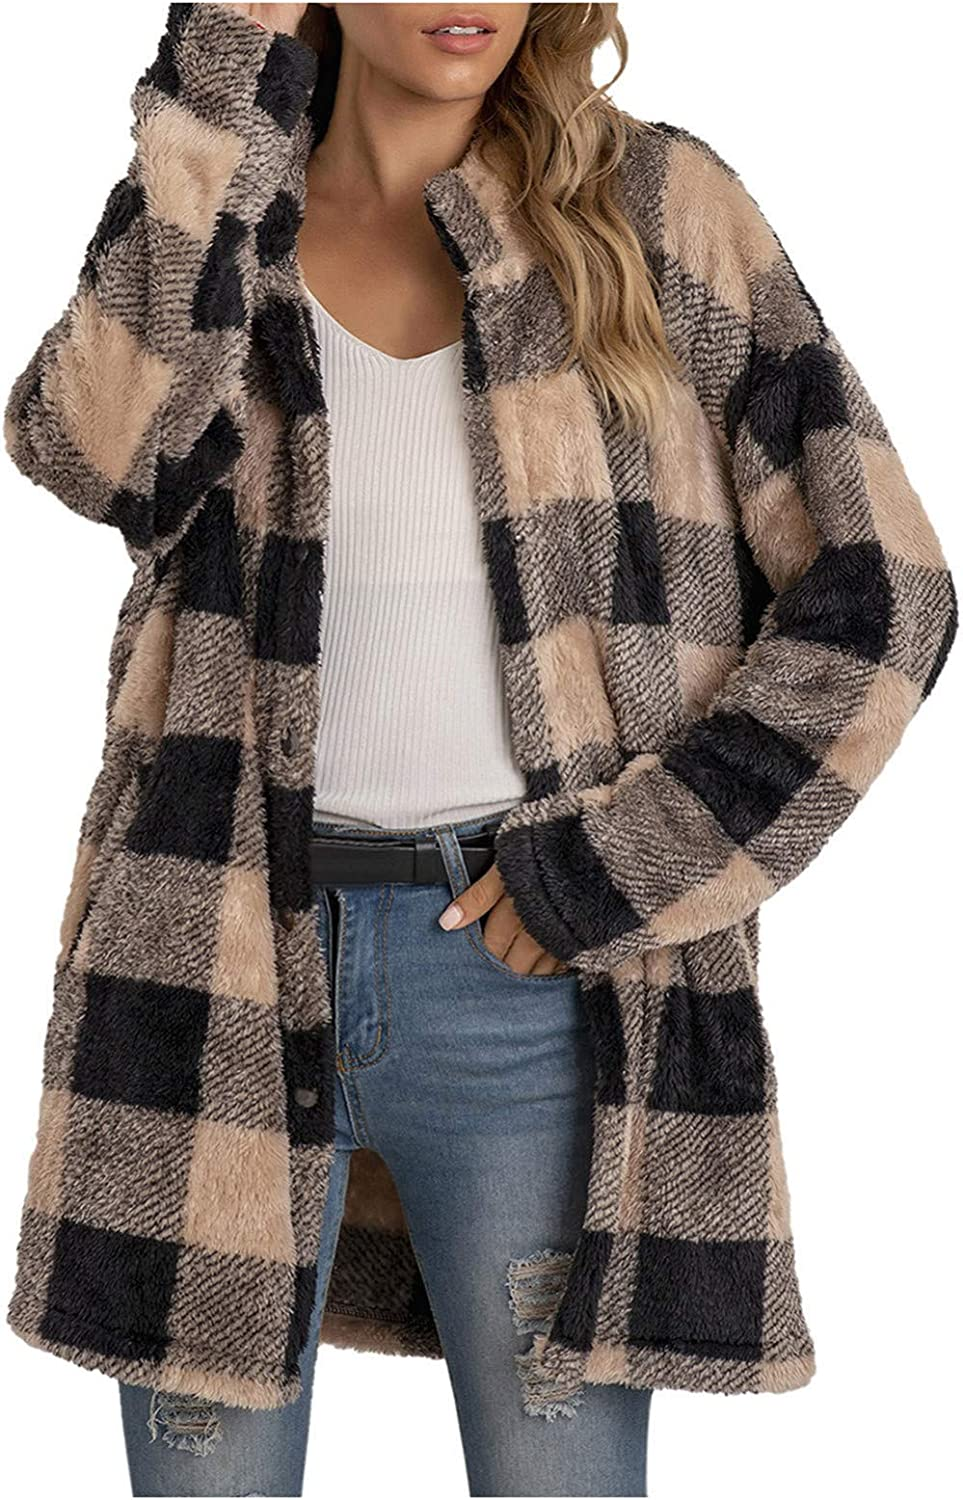 Women's Casual Christmas Plaid Jacket Long Sleeve Buttons Plush Cardigan Winter Warm Lapel Trench Coat